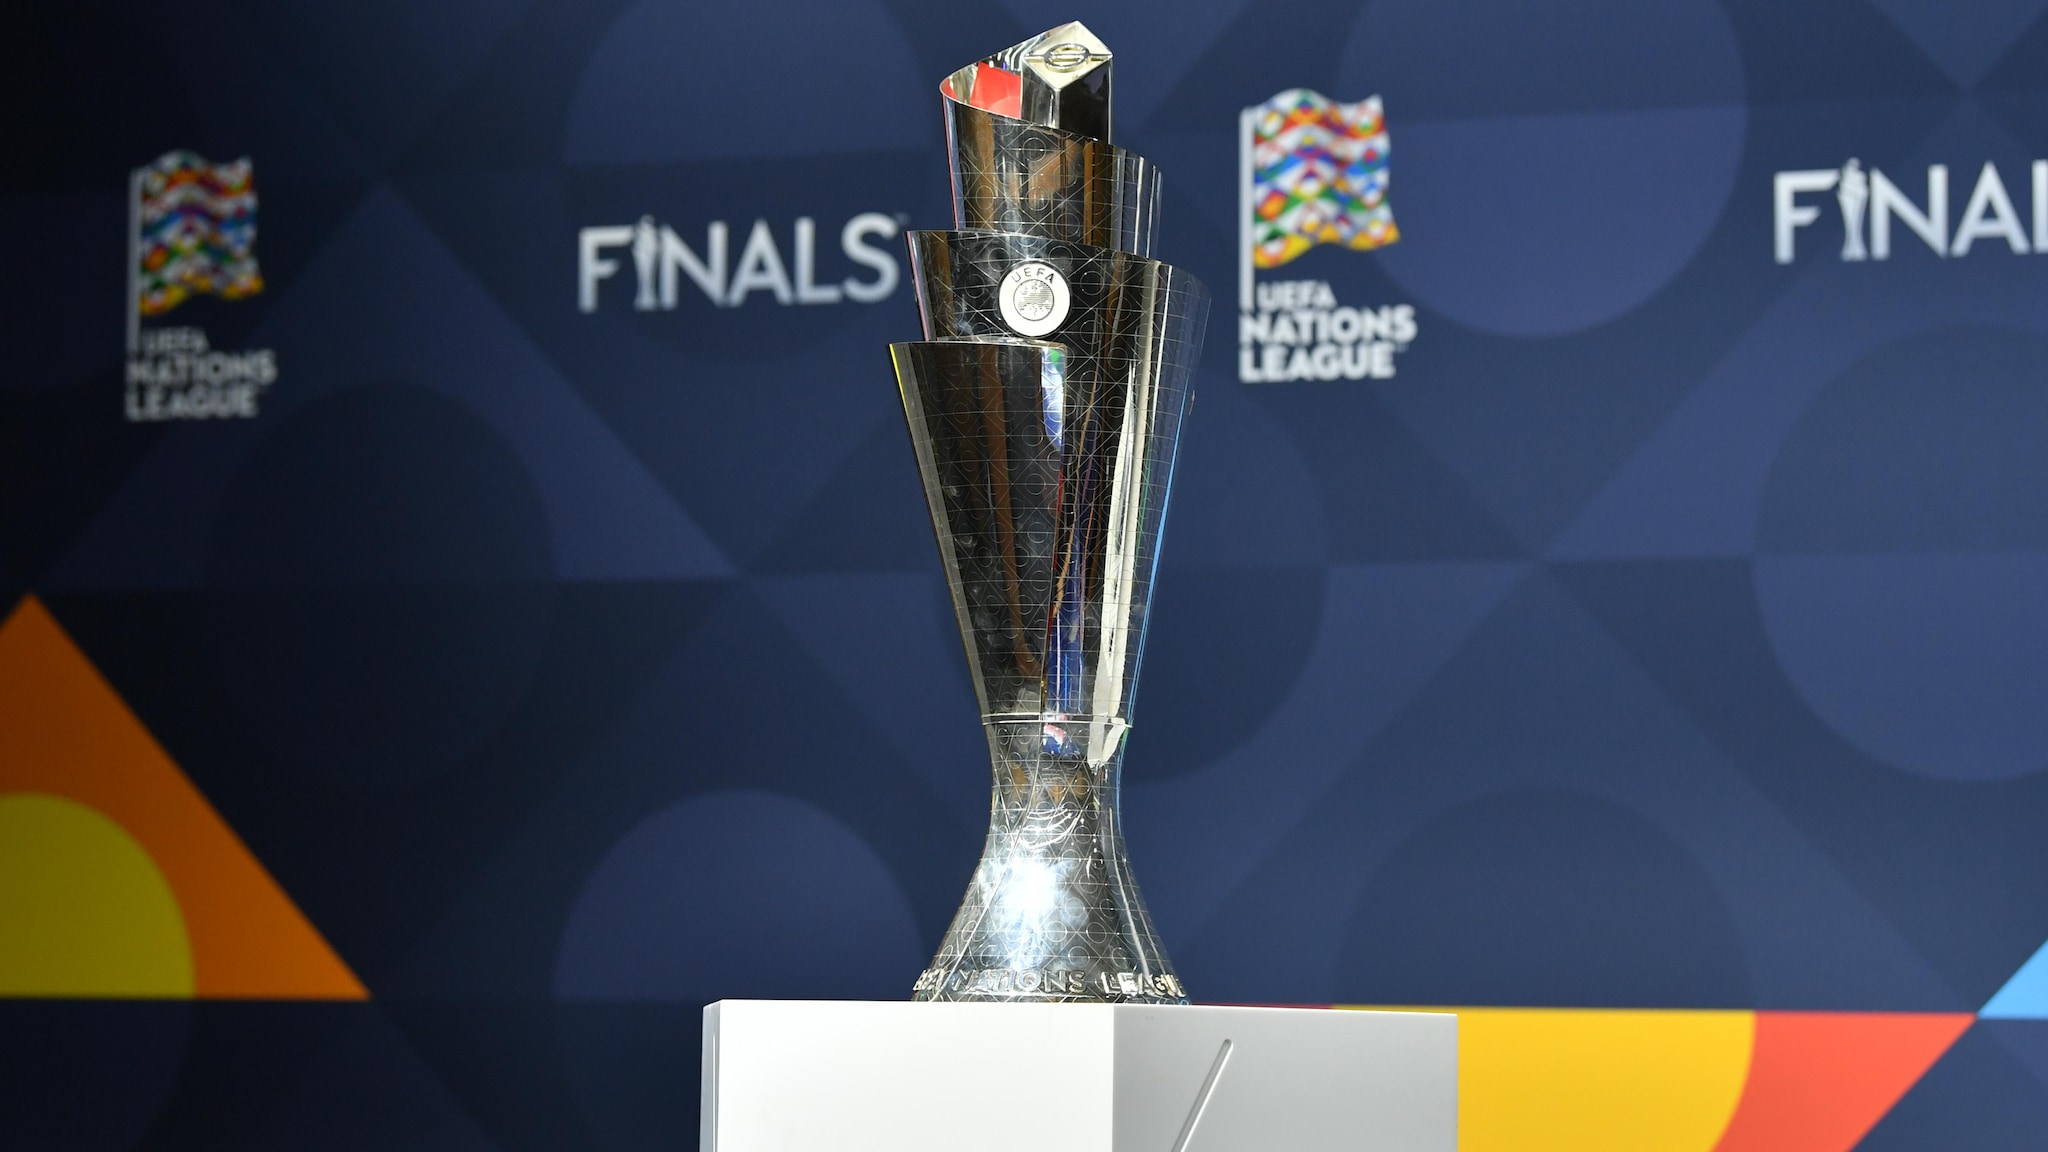 UEFA Nations League finals: all you need to know